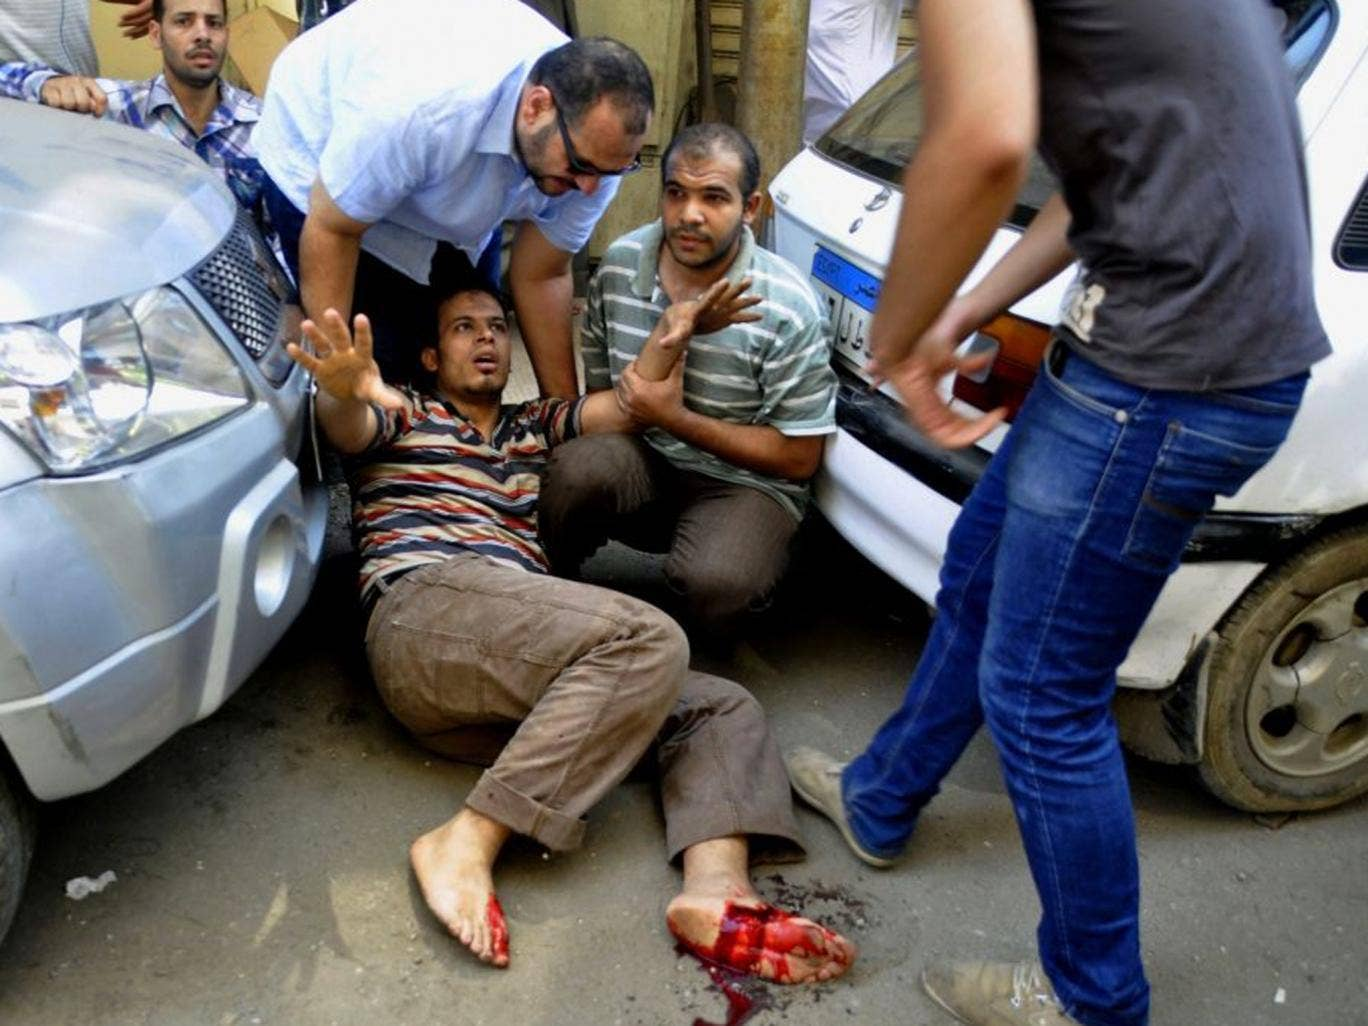 An Egyptian protester lies wounded after a Muslim Brotherhood protest approached a church protected by the army in Giza, Egypt on 16 August 2013